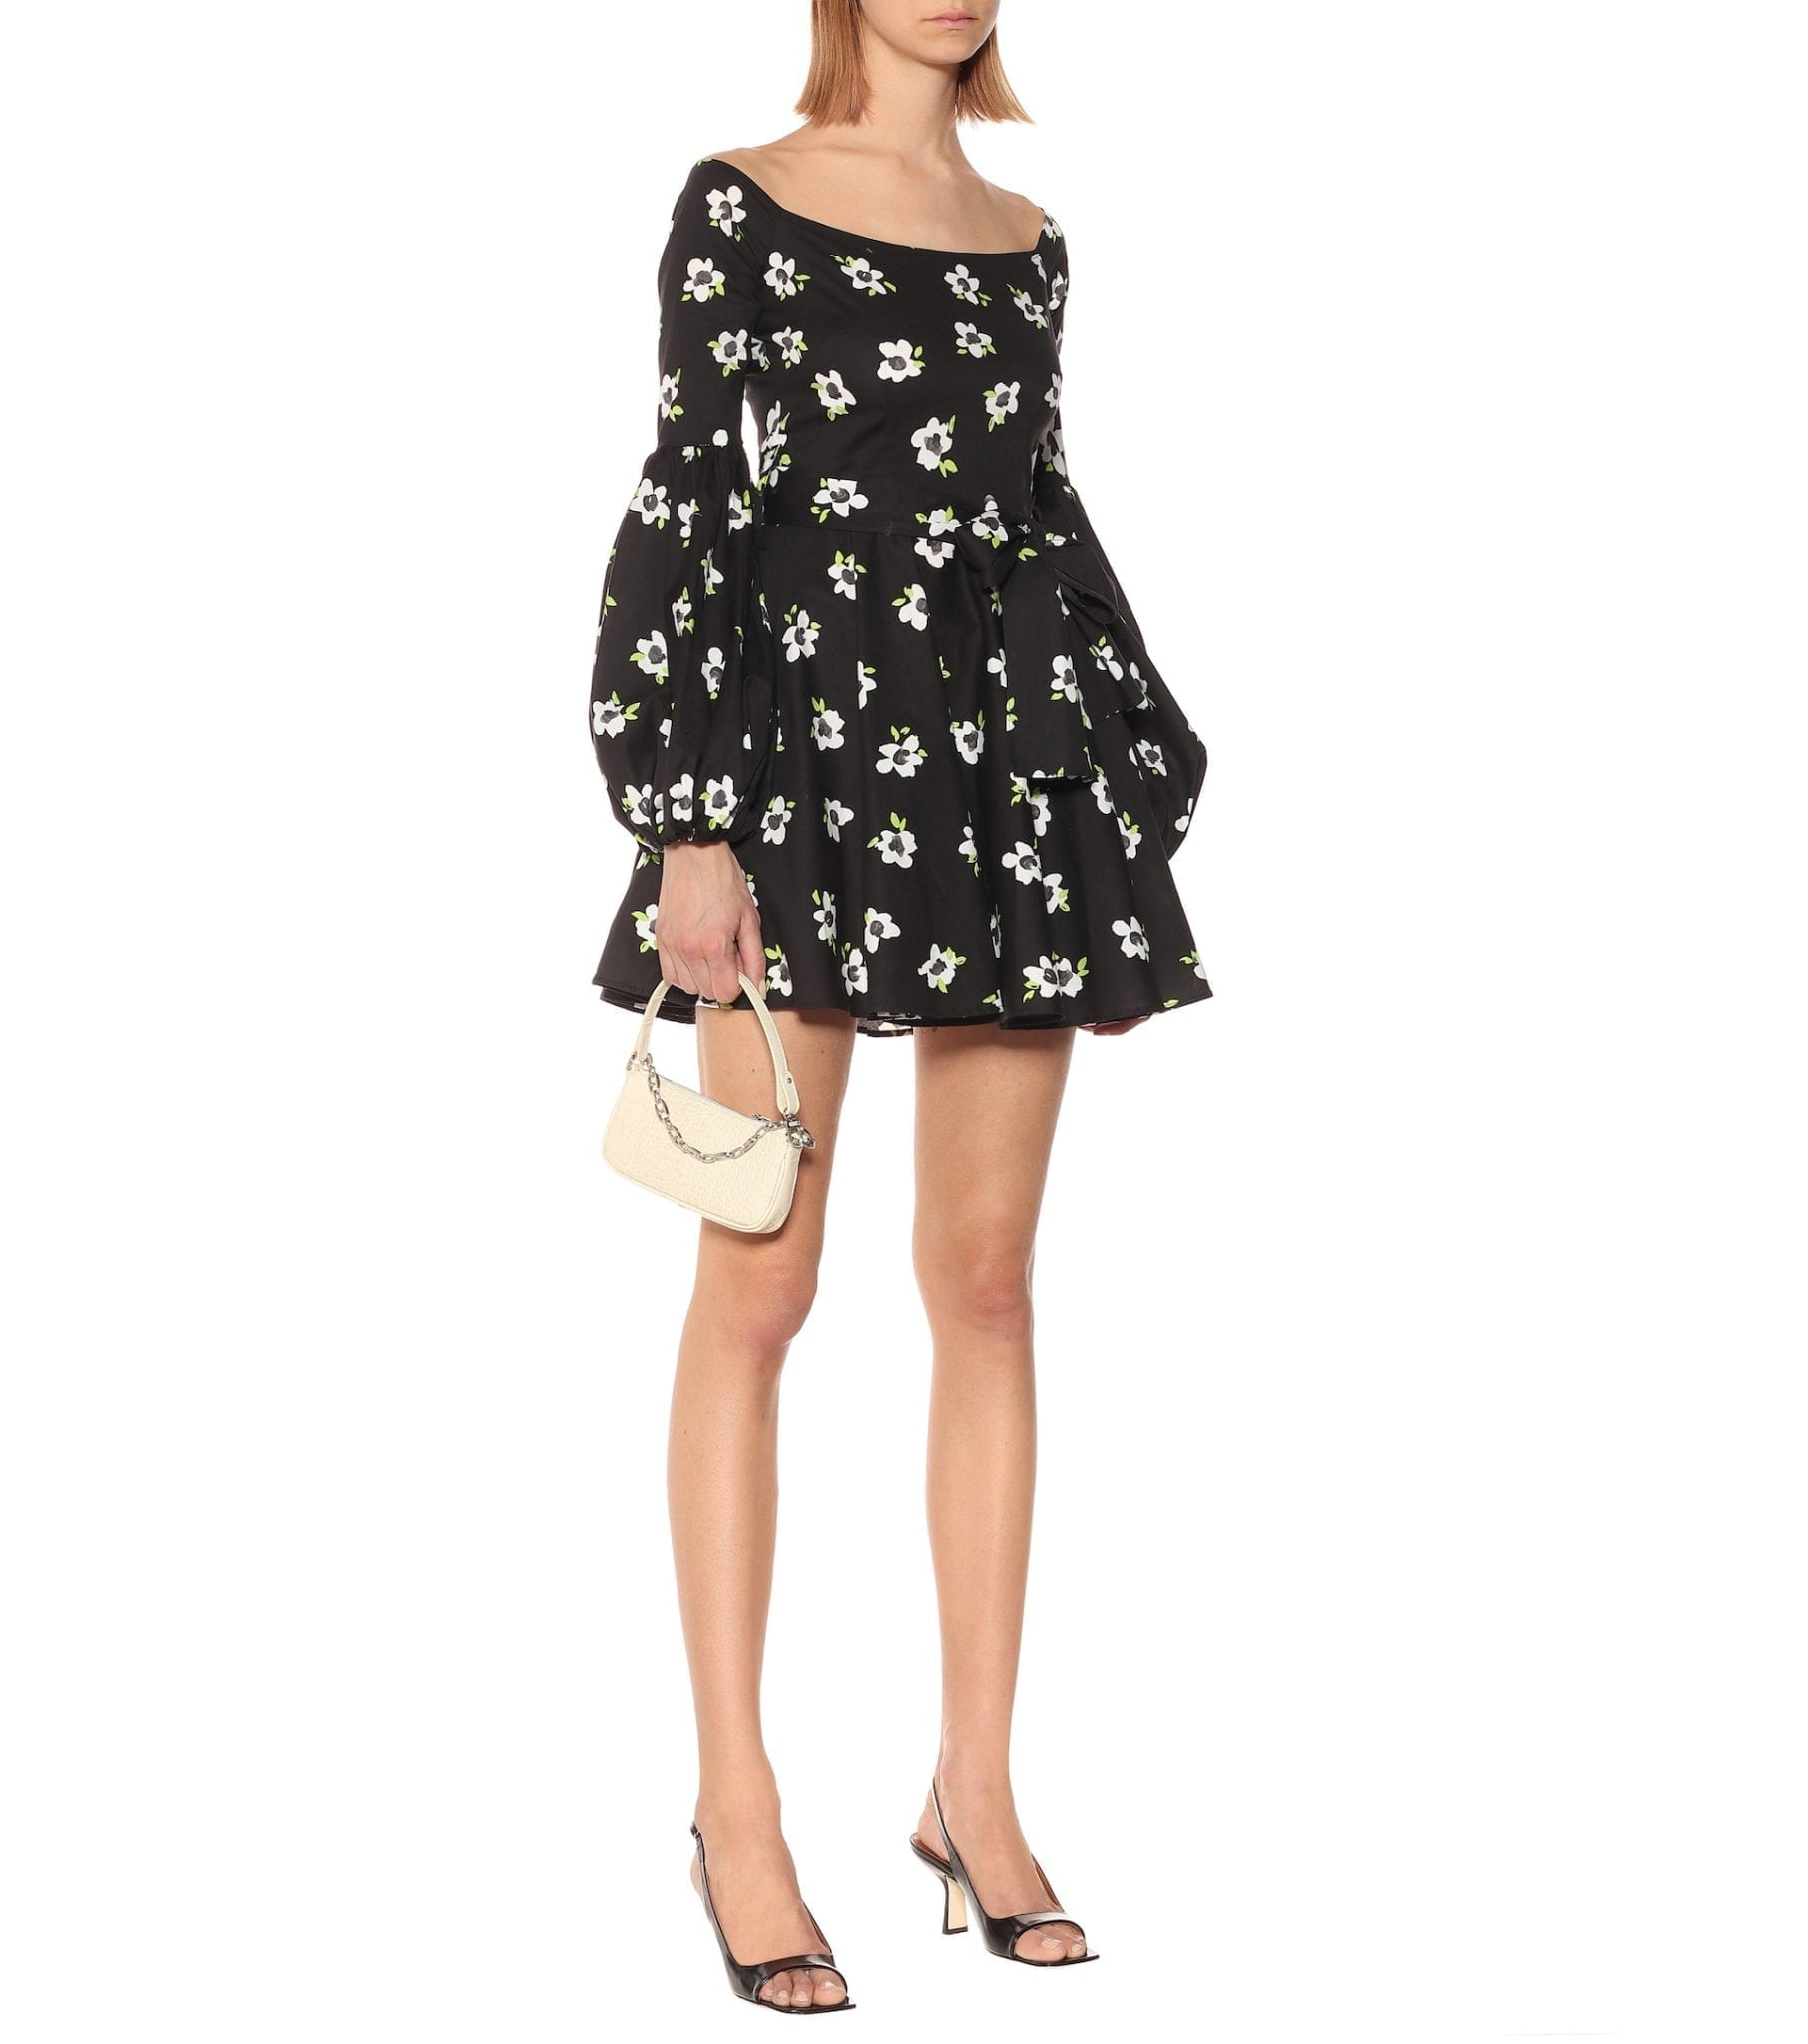 CAROLINE CONSTAS Gisele Floral Cotton Mini Dress